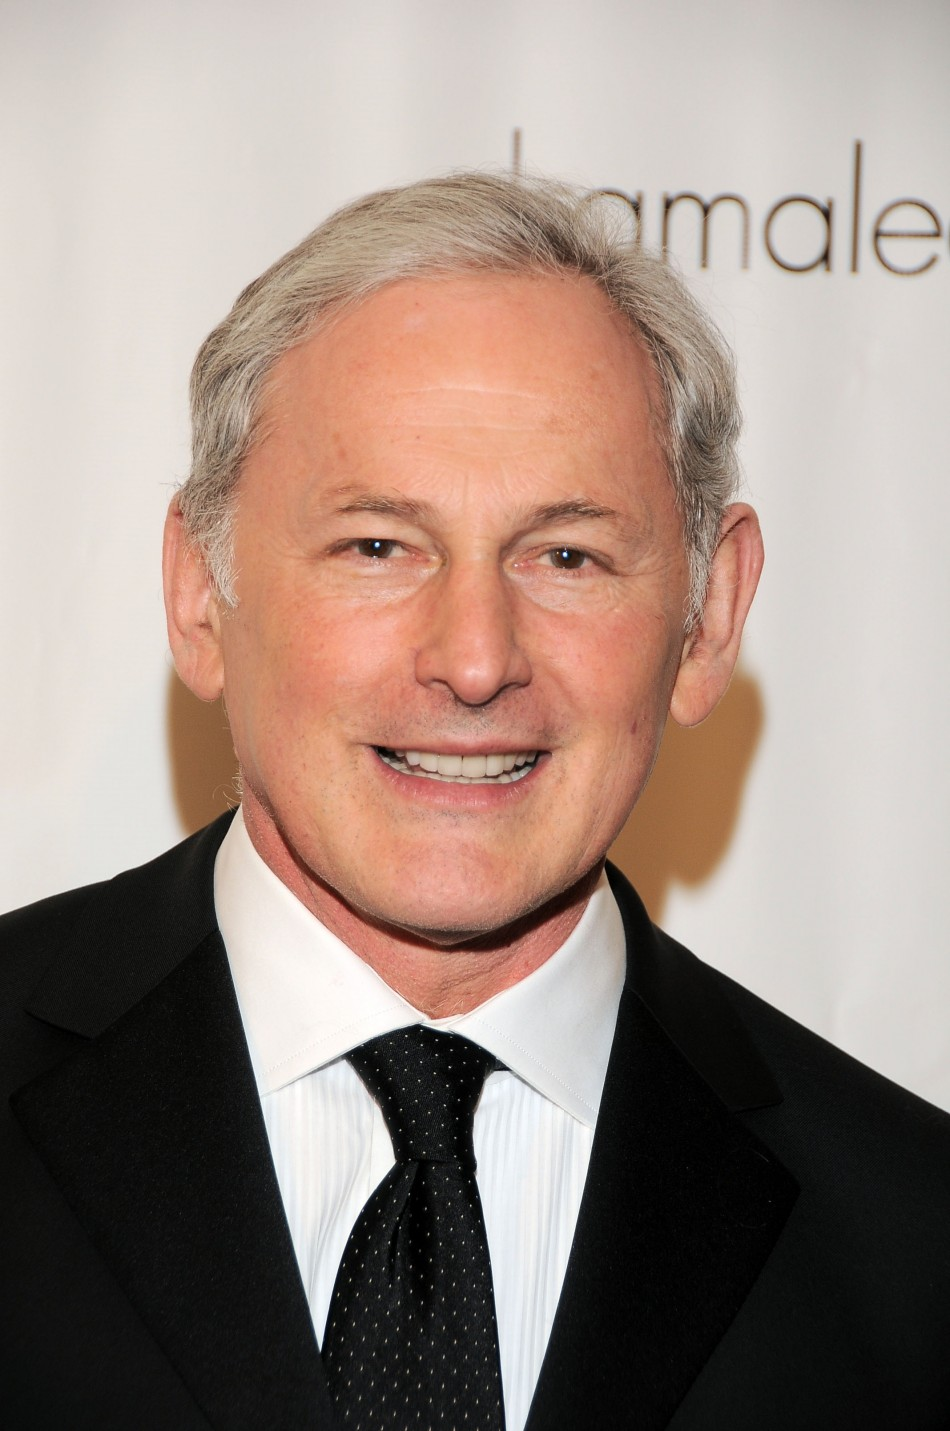 garber gay singles Titanic actor victor garber first publicly came out in a 2012 a look at openly gay celebrities it was confirmed that he was dating star trek actor.